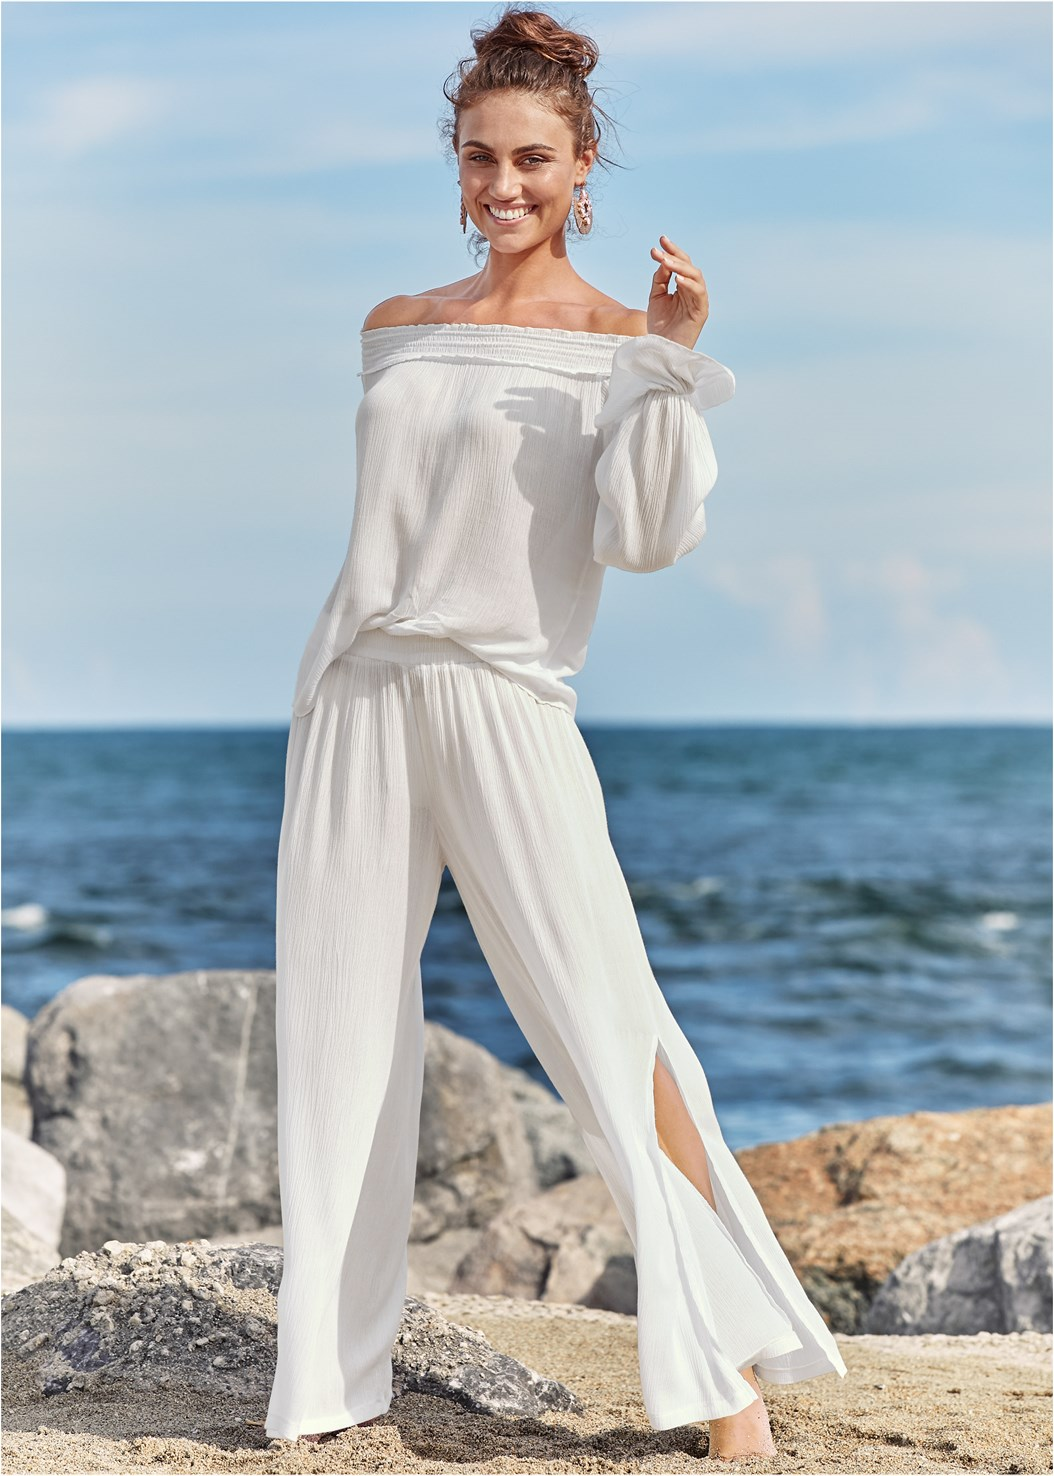 Off Shoulder Cover-Up Top,Side Slit Cover-Up Pant,Enhancer Push Up Ring Halter Triangle Top ,Scoop Front Classic Bikini Bottom ,Slimming Bandeau One-Piece,Woven Handbag